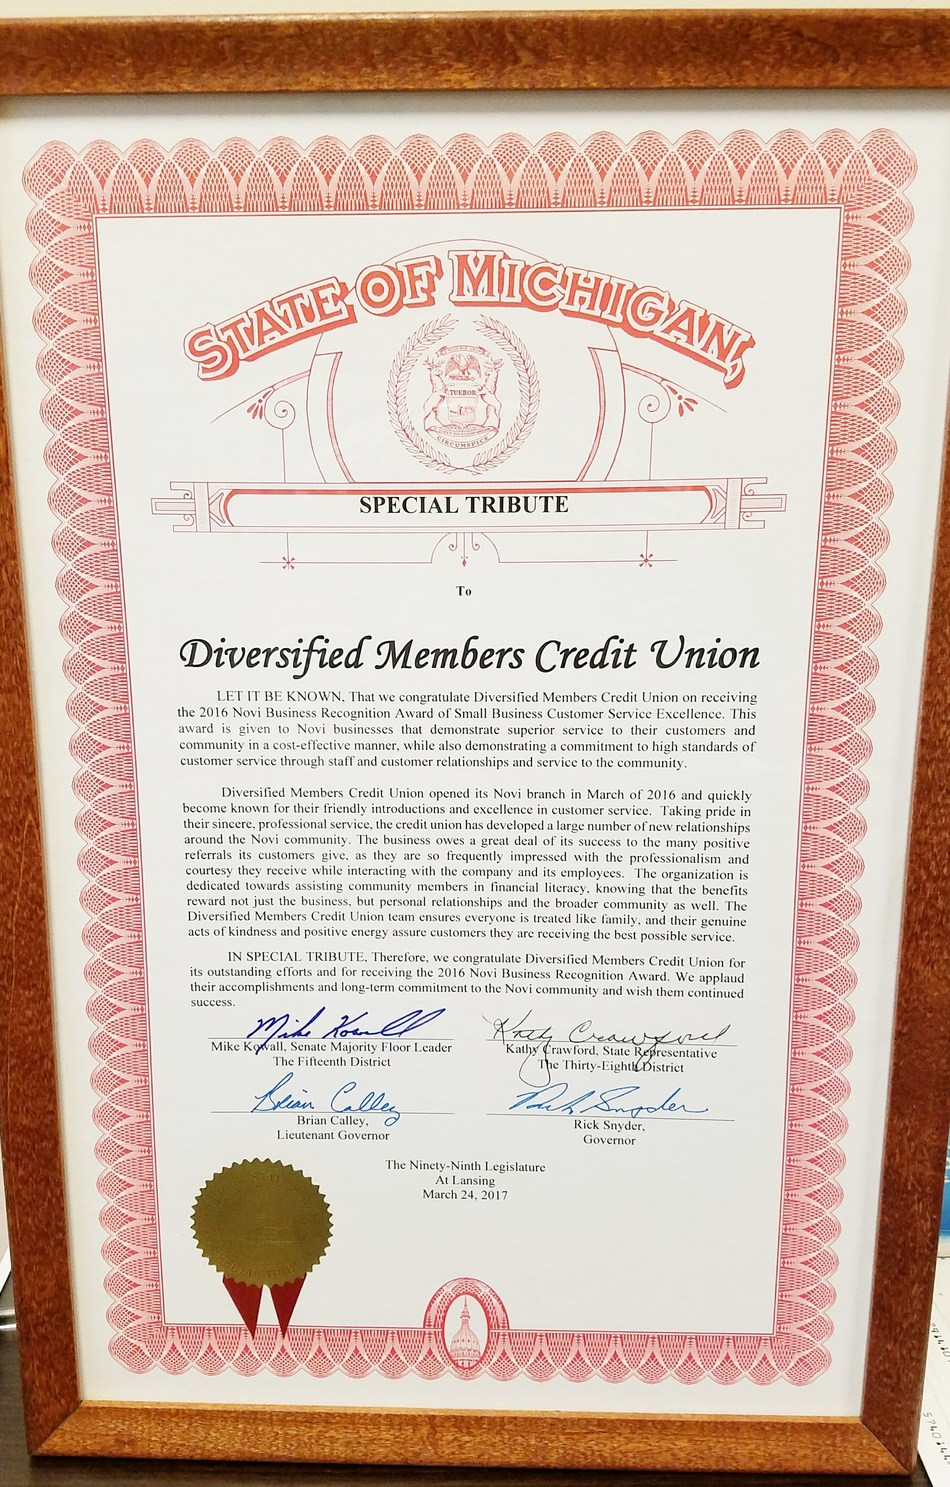 Diversified Members Credit Union Receives 2016 Novi Business Recognition Award.